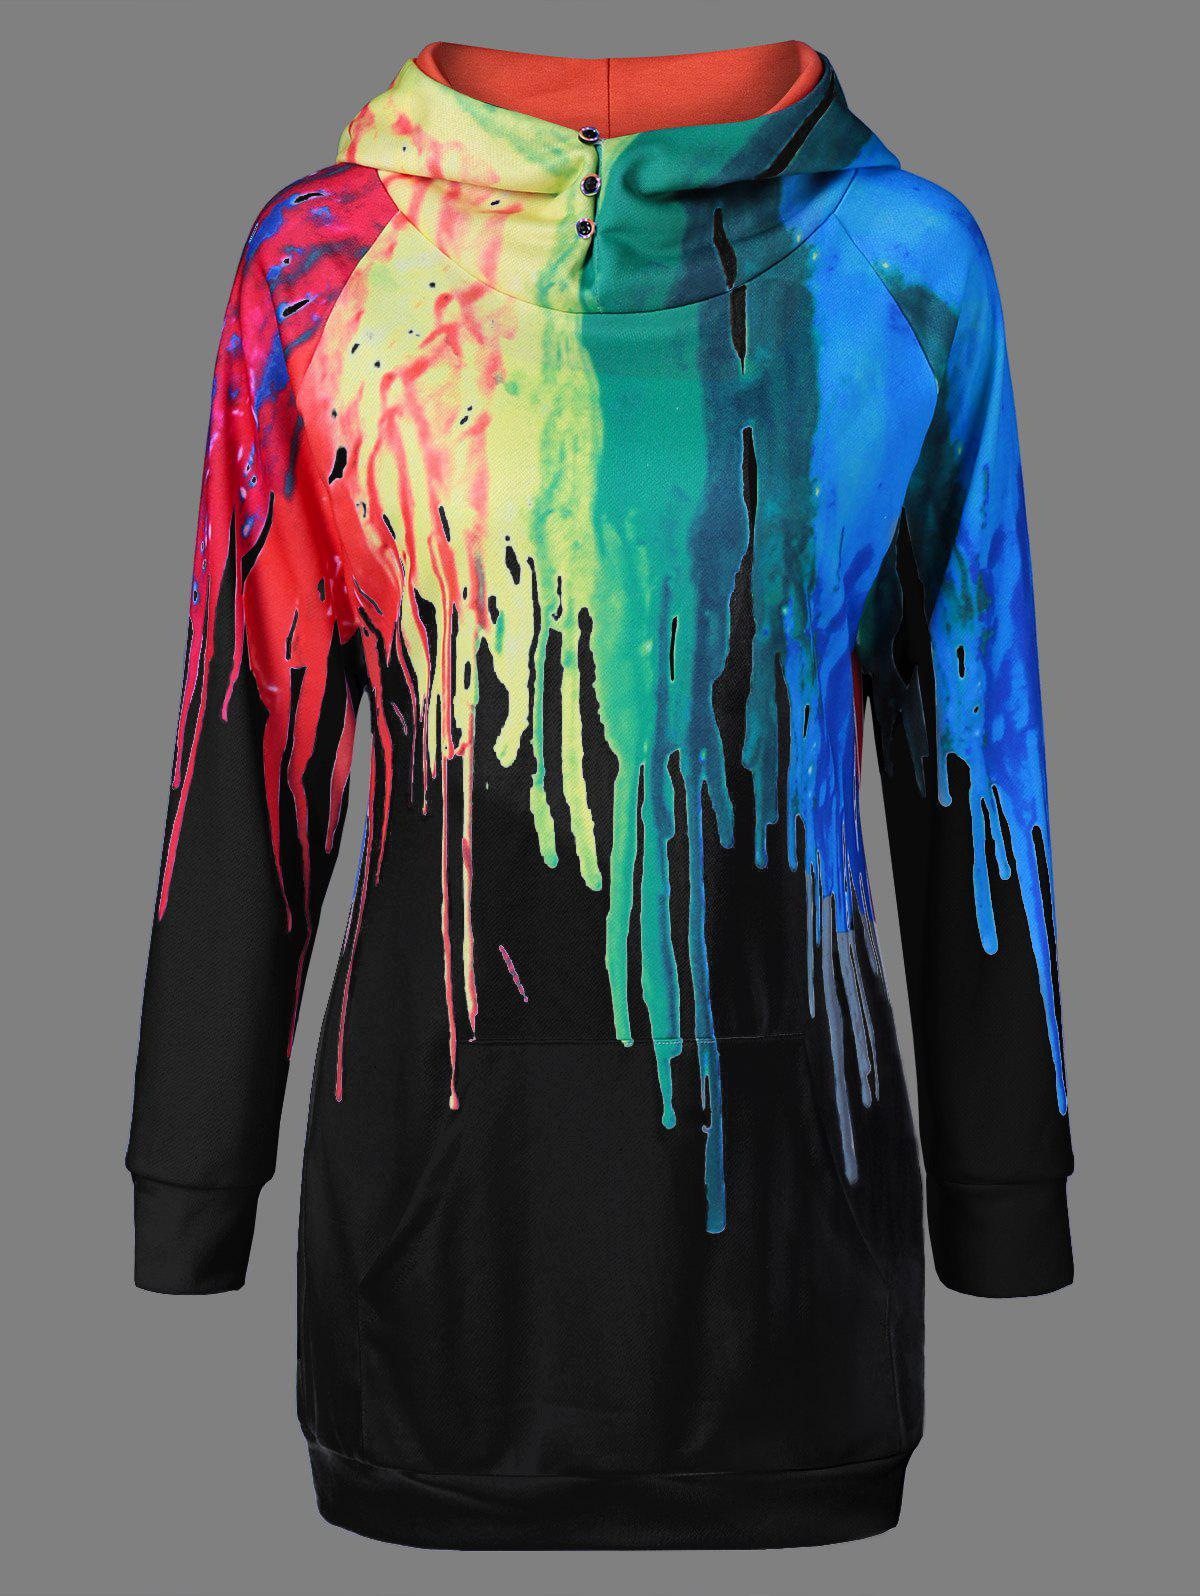 Oil Paint Over Print Rainbow HoodieWOMEN<br><br>Size: S; Color: BLACK; Material: Polyester; Shirt Length: Long; Sleeve Length: Full; Style: Fashion; Pattern Style: Print; Season: Fall,Spring; Weight: 0.560kg; Package Contents: 1 x Hoodie;